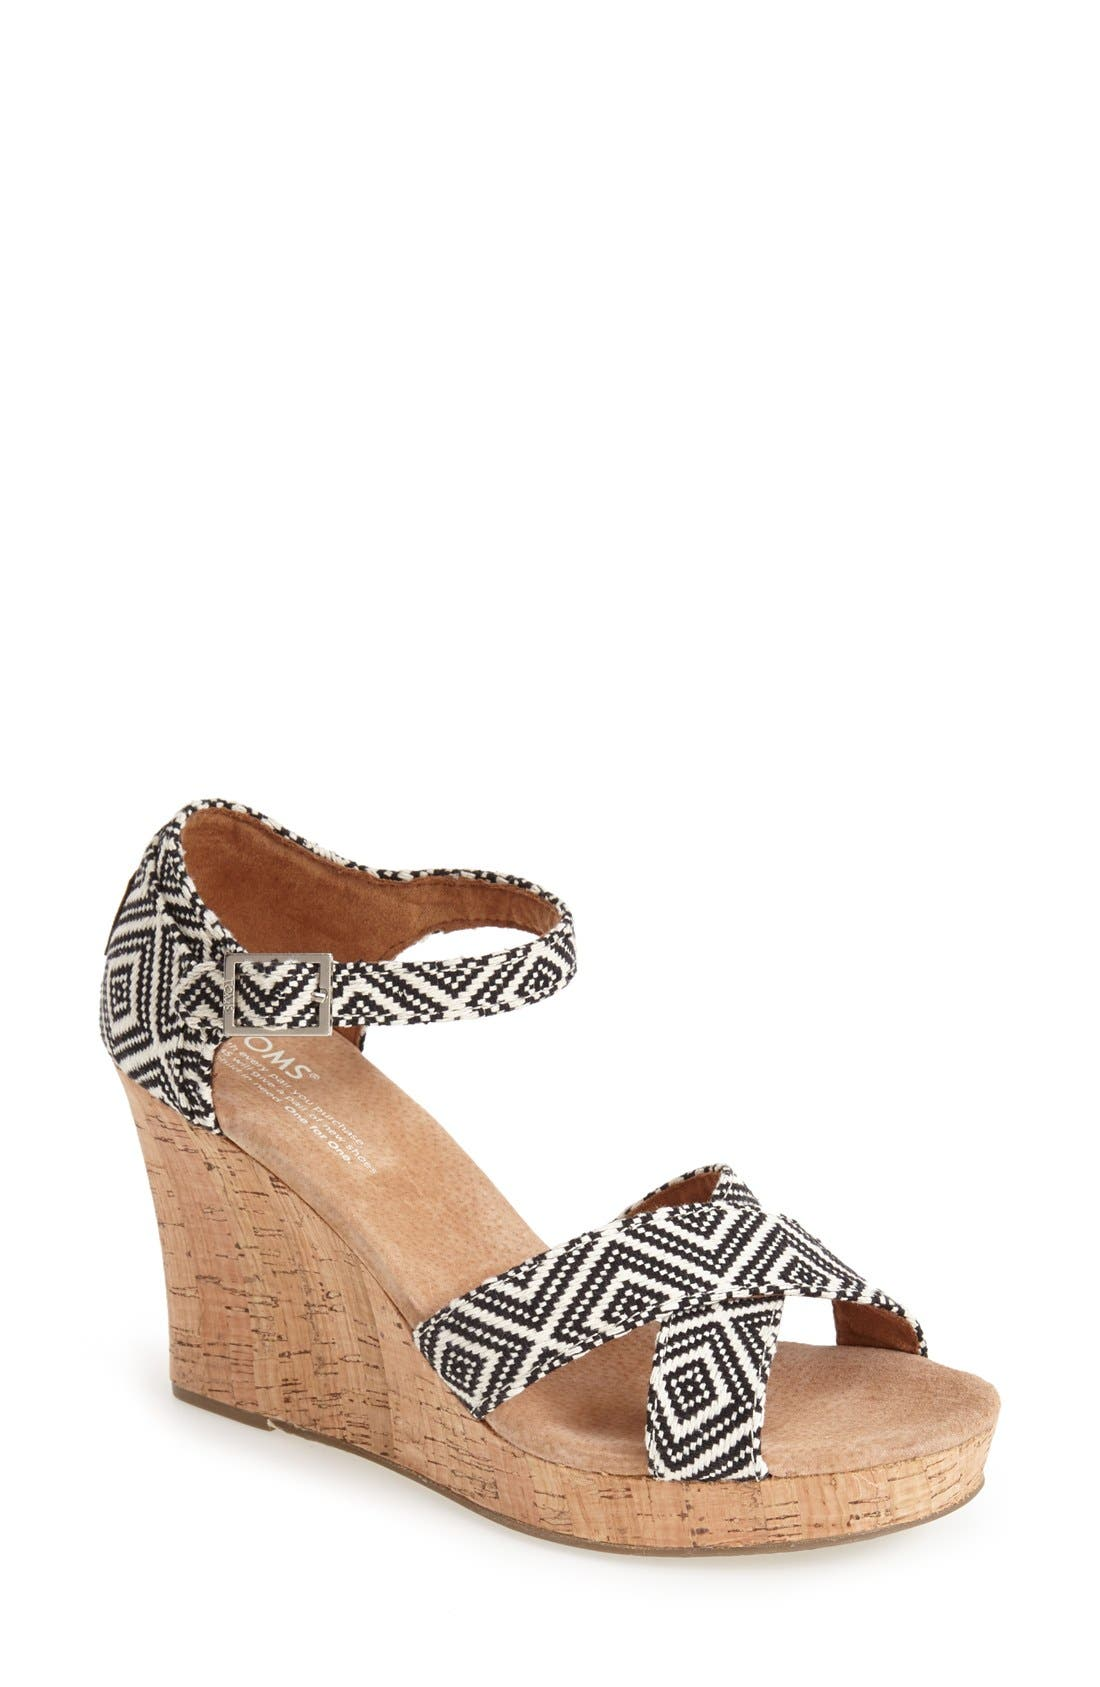 Main Image - TOMS Canvas Woven Geometric Print Wedge Sandal (Women)